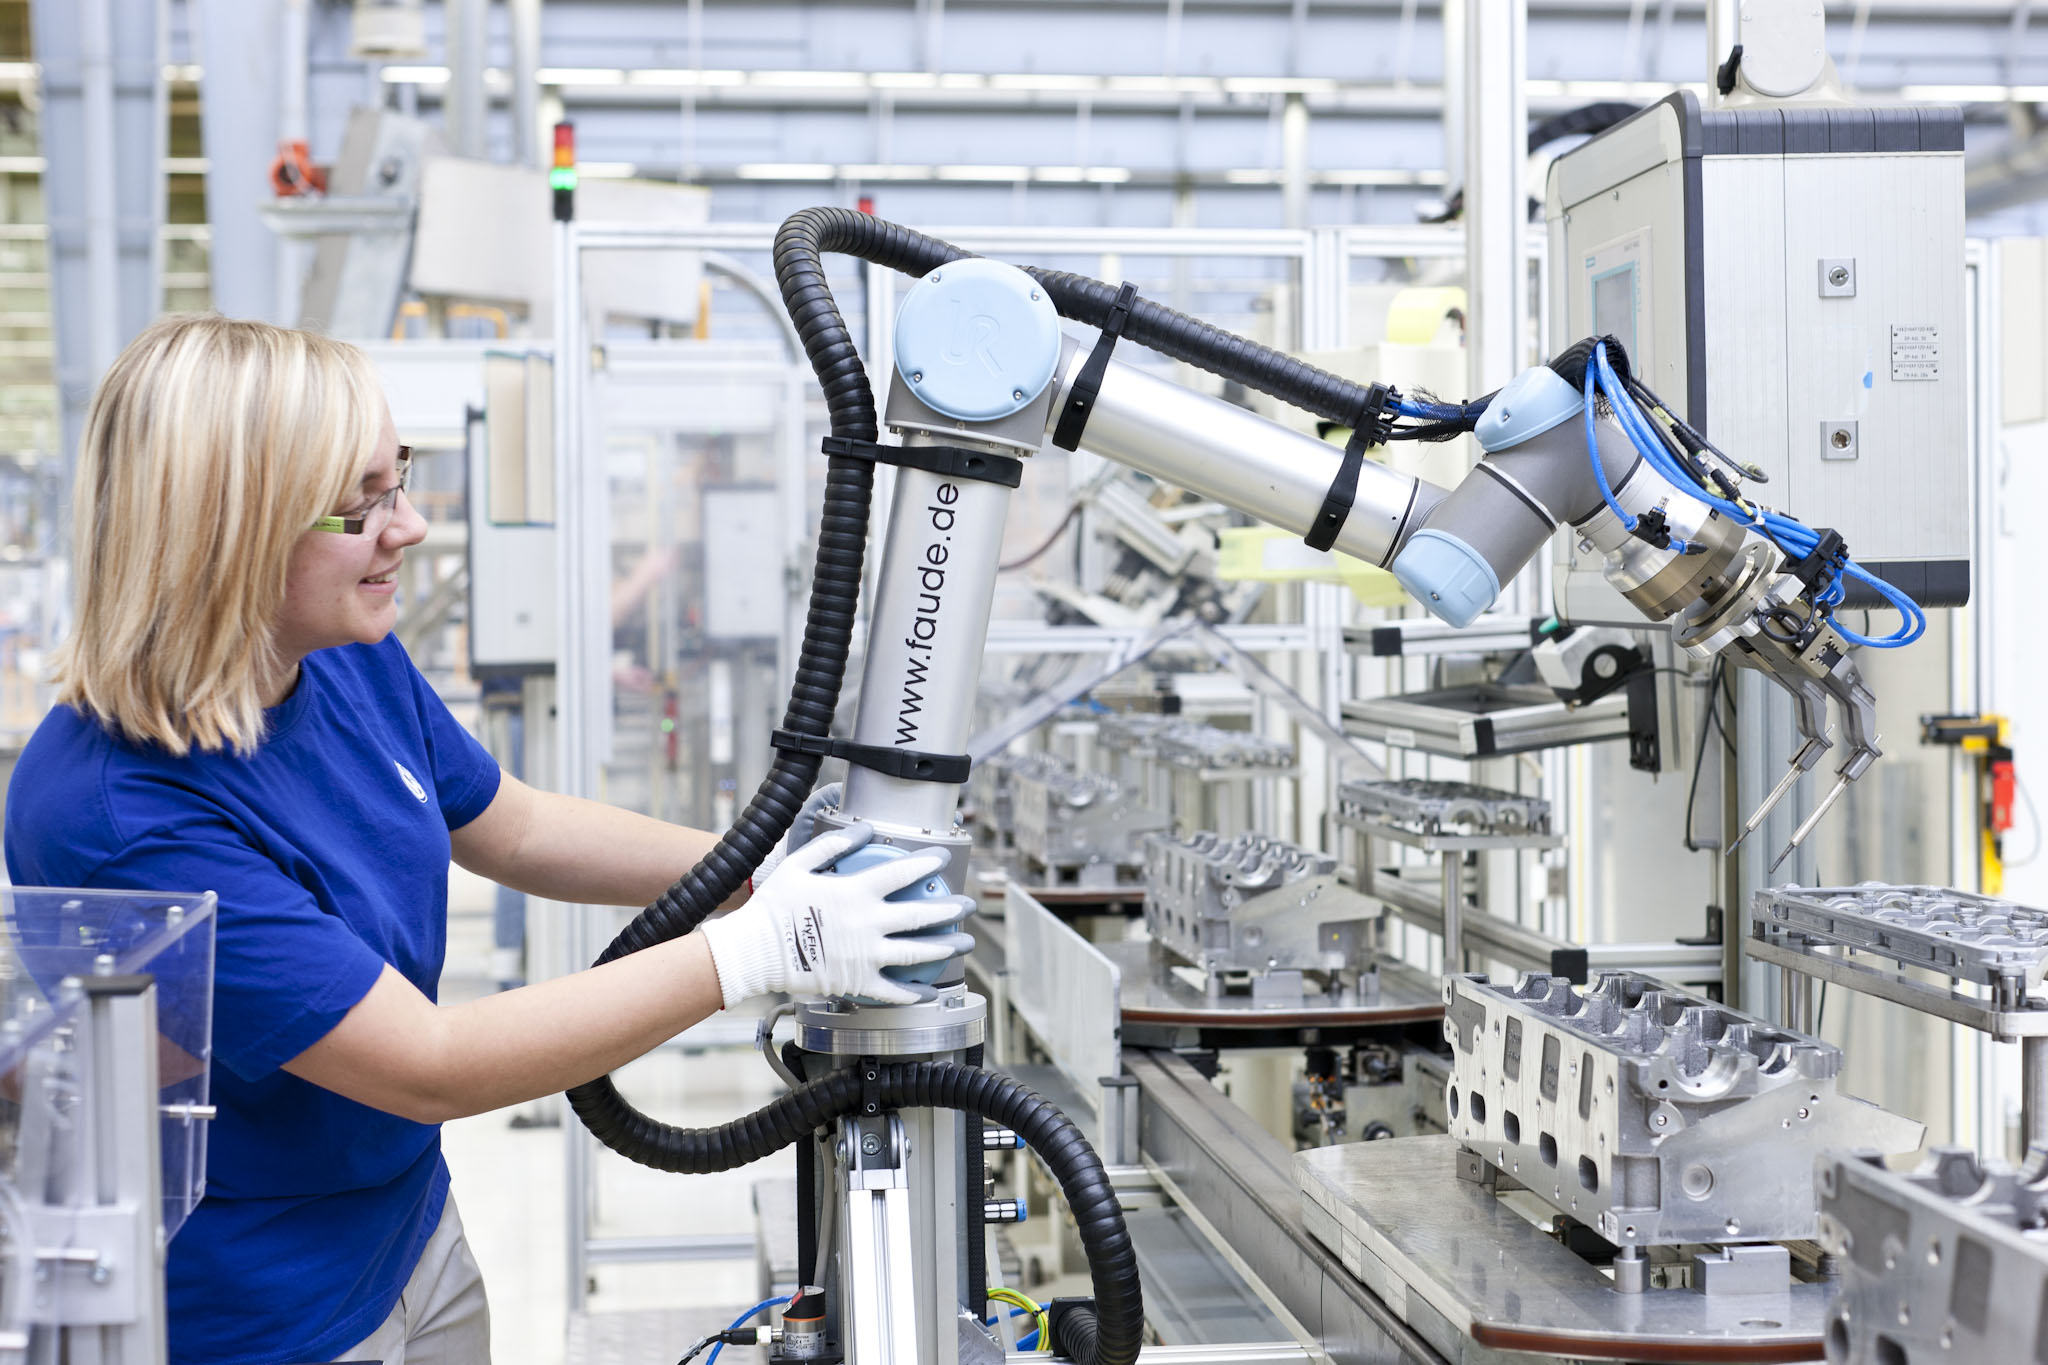 The 3 Most Common Tasks Delegated to Robots in Manufacturing